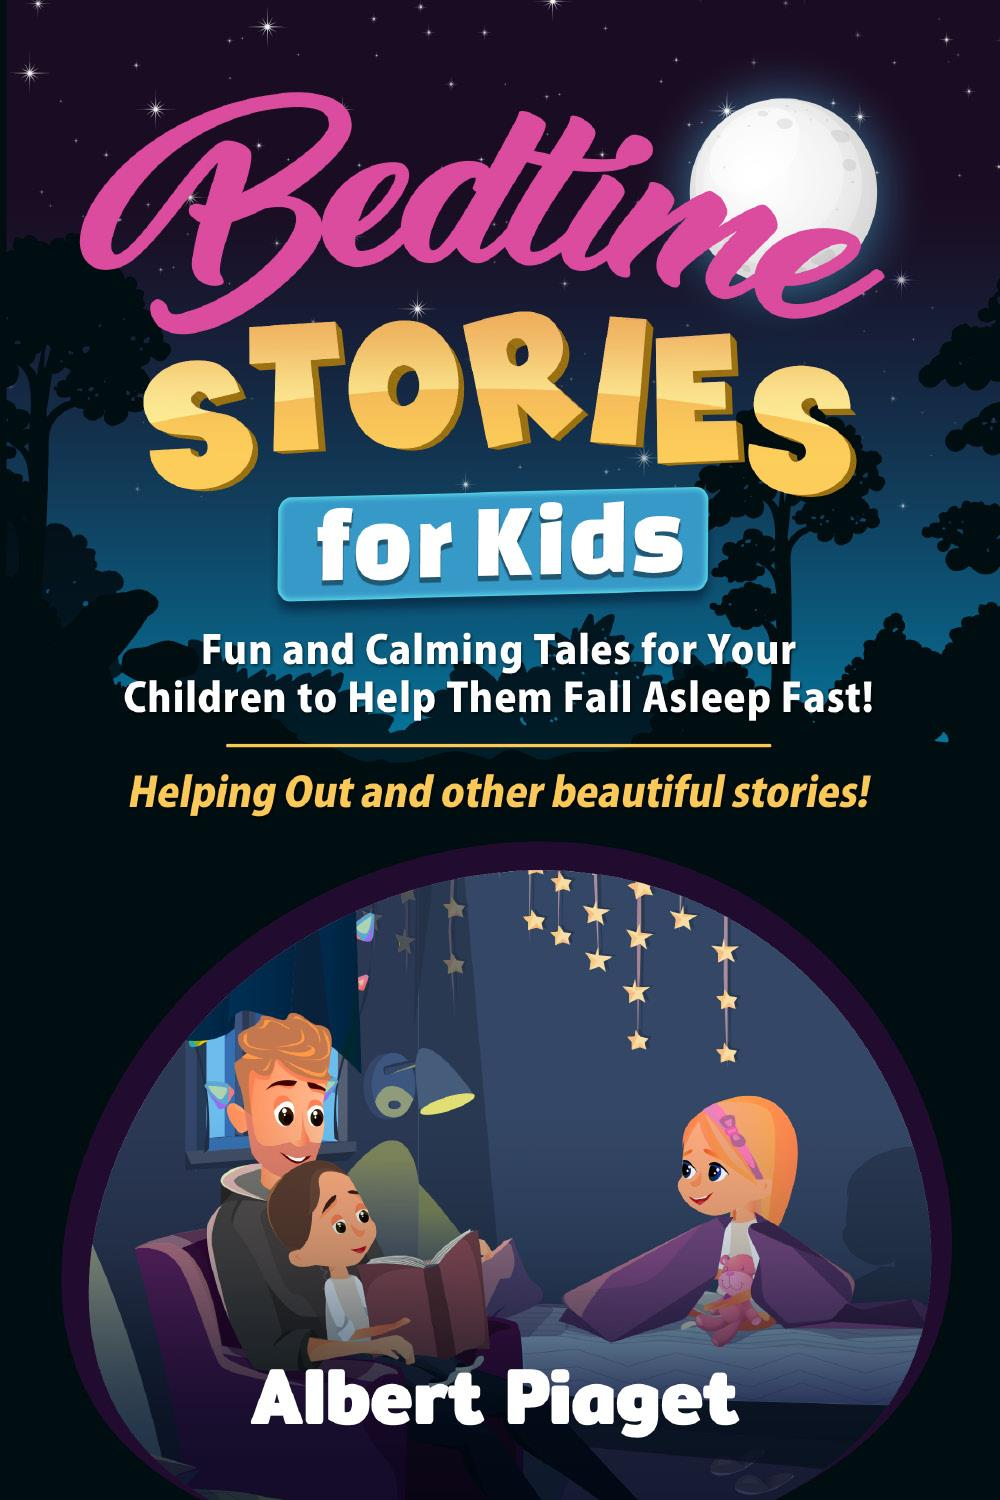 Bedtime Stories for Kids. Fun and Calming Tales for Your Children to Help Them Fall Asleep Fast! Helping Out and other beautiful stories!